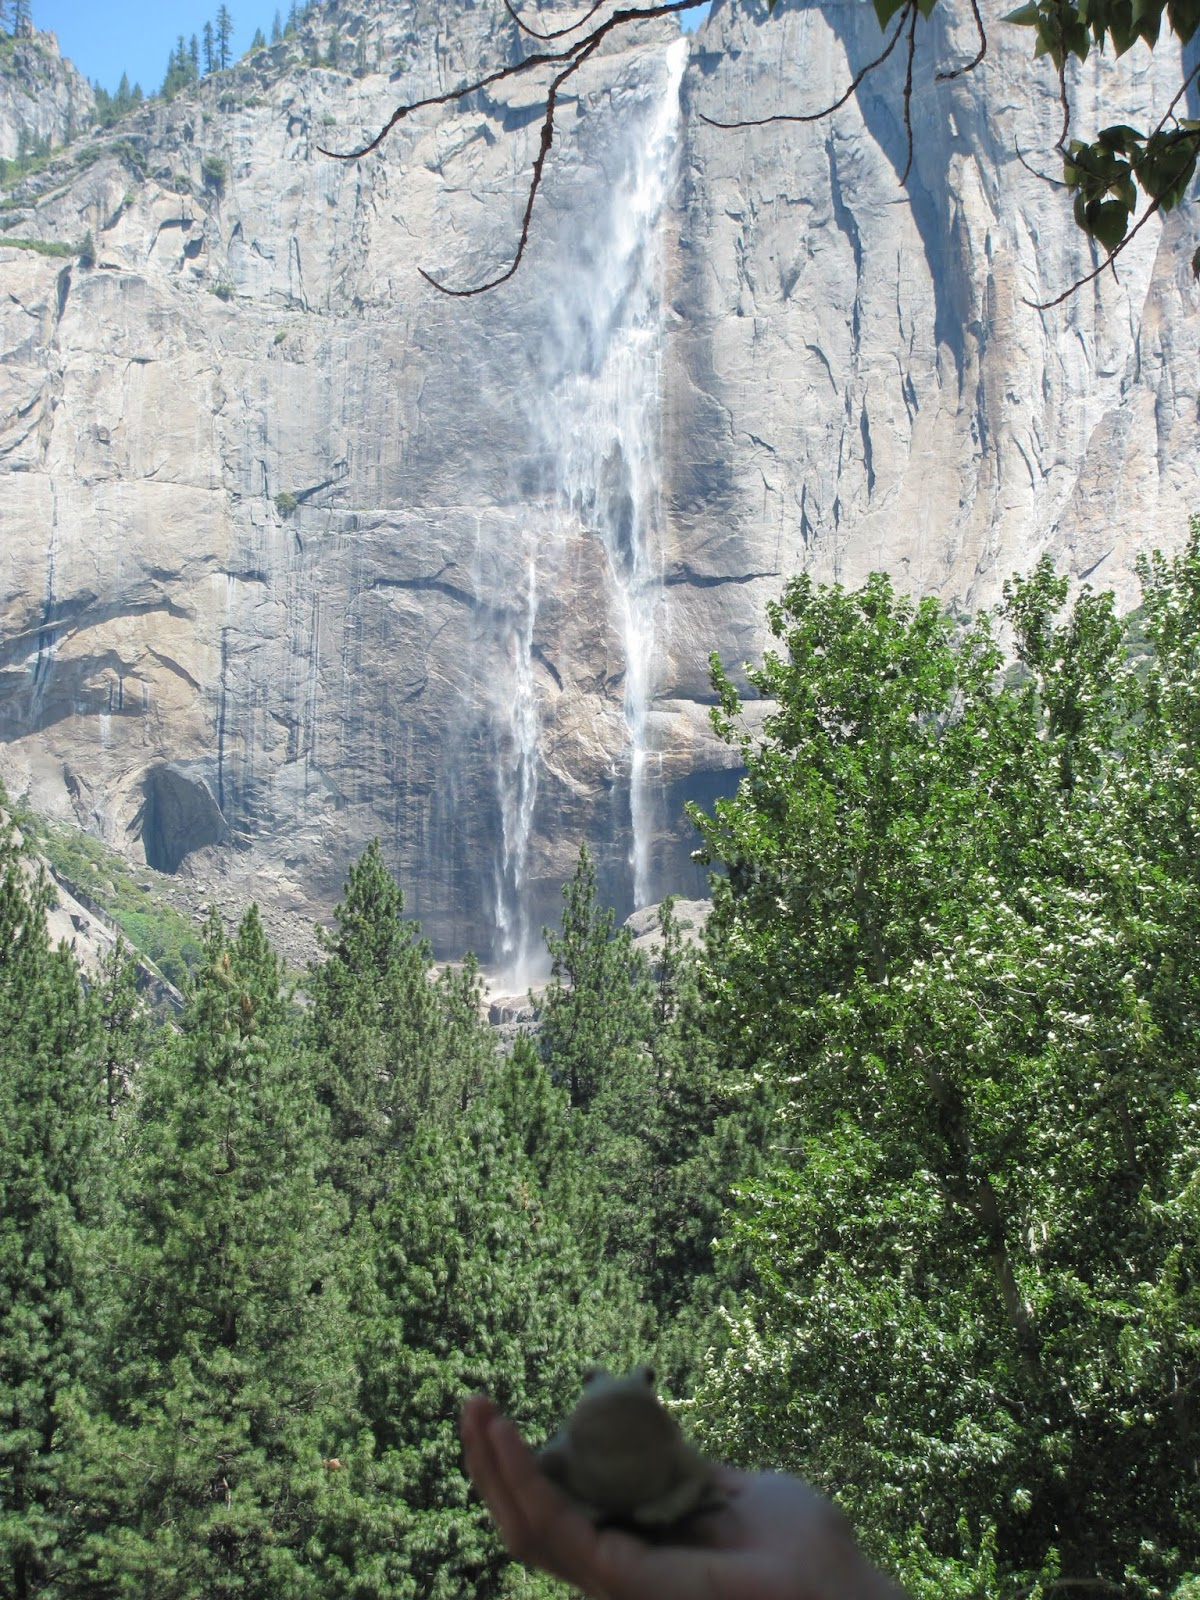 Yosemite Falls cascade to the valley floor with Frog at Yosemite National Park, California